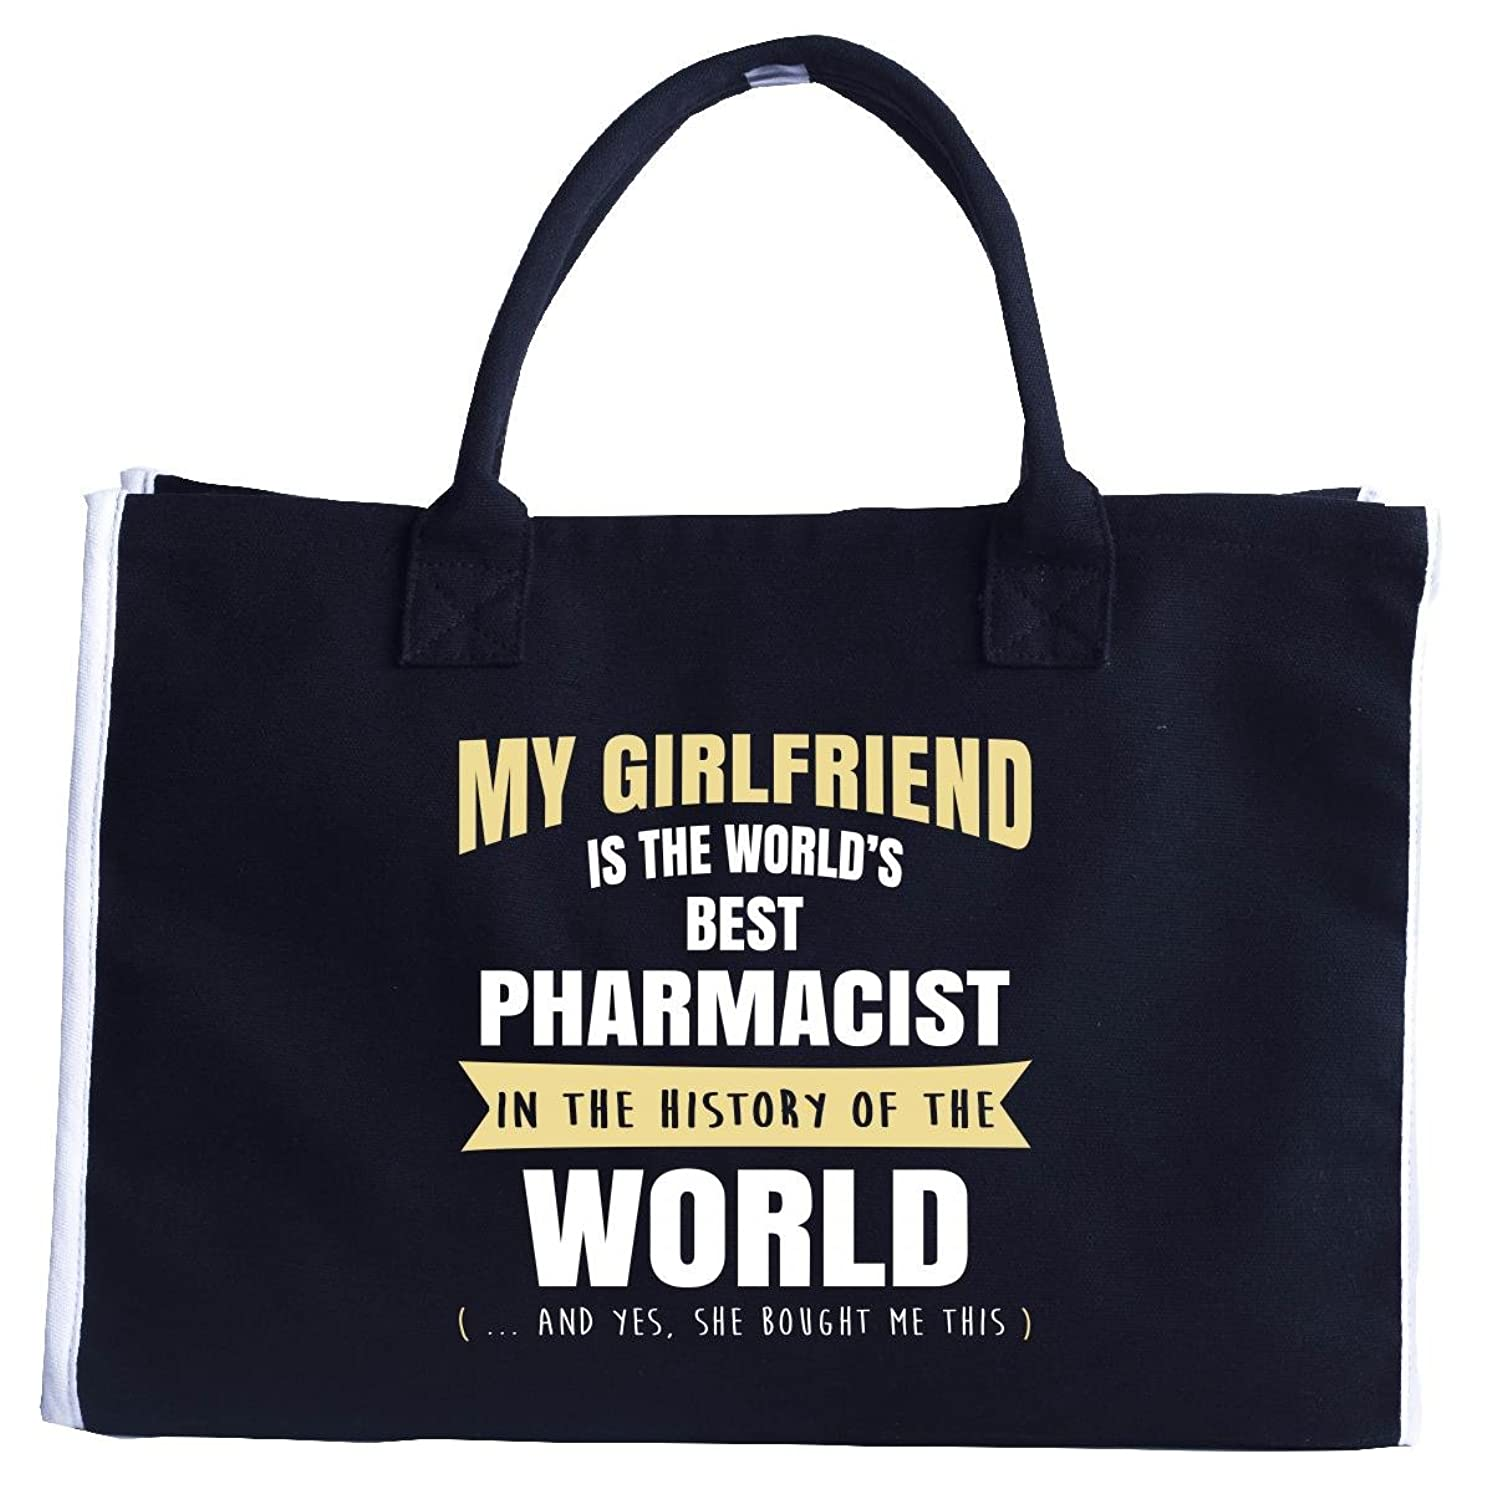 My Girlfriend Is The World's Best Pharmacist - Fashion Customized Tote Bag